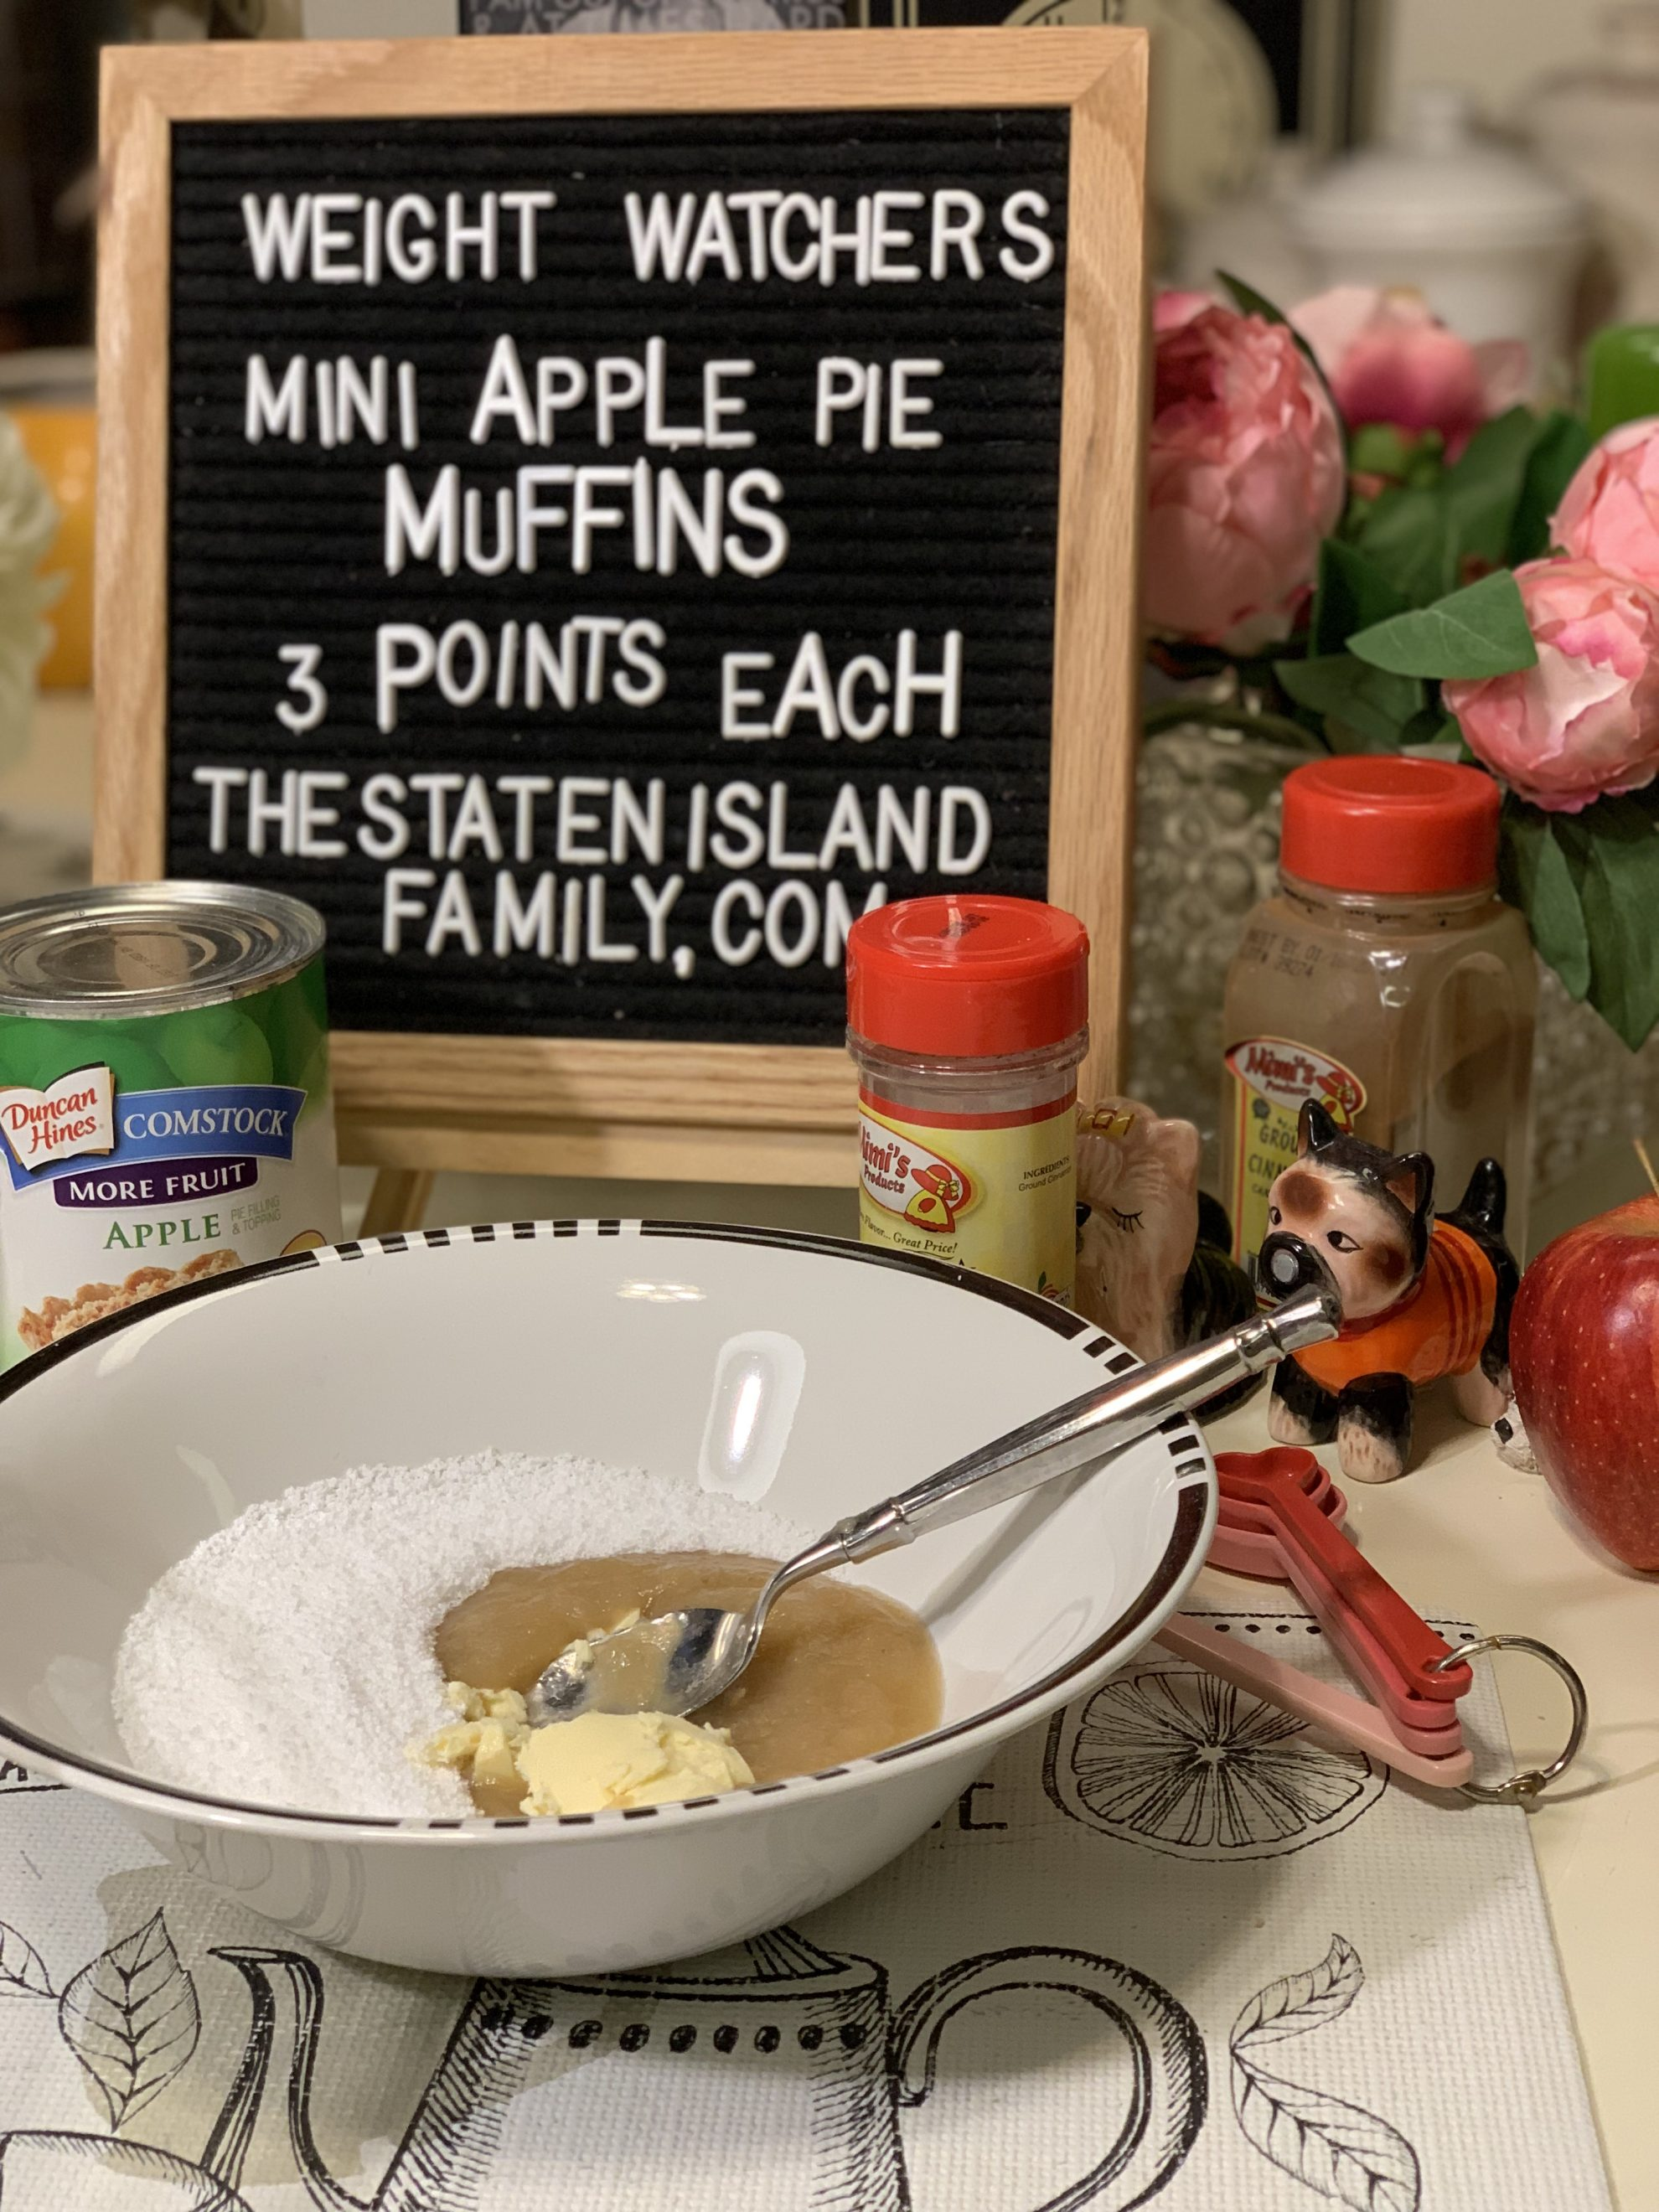 Go team blue 💙these weight watchers mini apple pie muffins are the perfect holiday dessert! and with their made from scratch doughy crust they are super filling! get the recipe for these three point treats here: https://www.thestatenislandfamily.com/weight-watchers-mini-apple-pie-muffins/